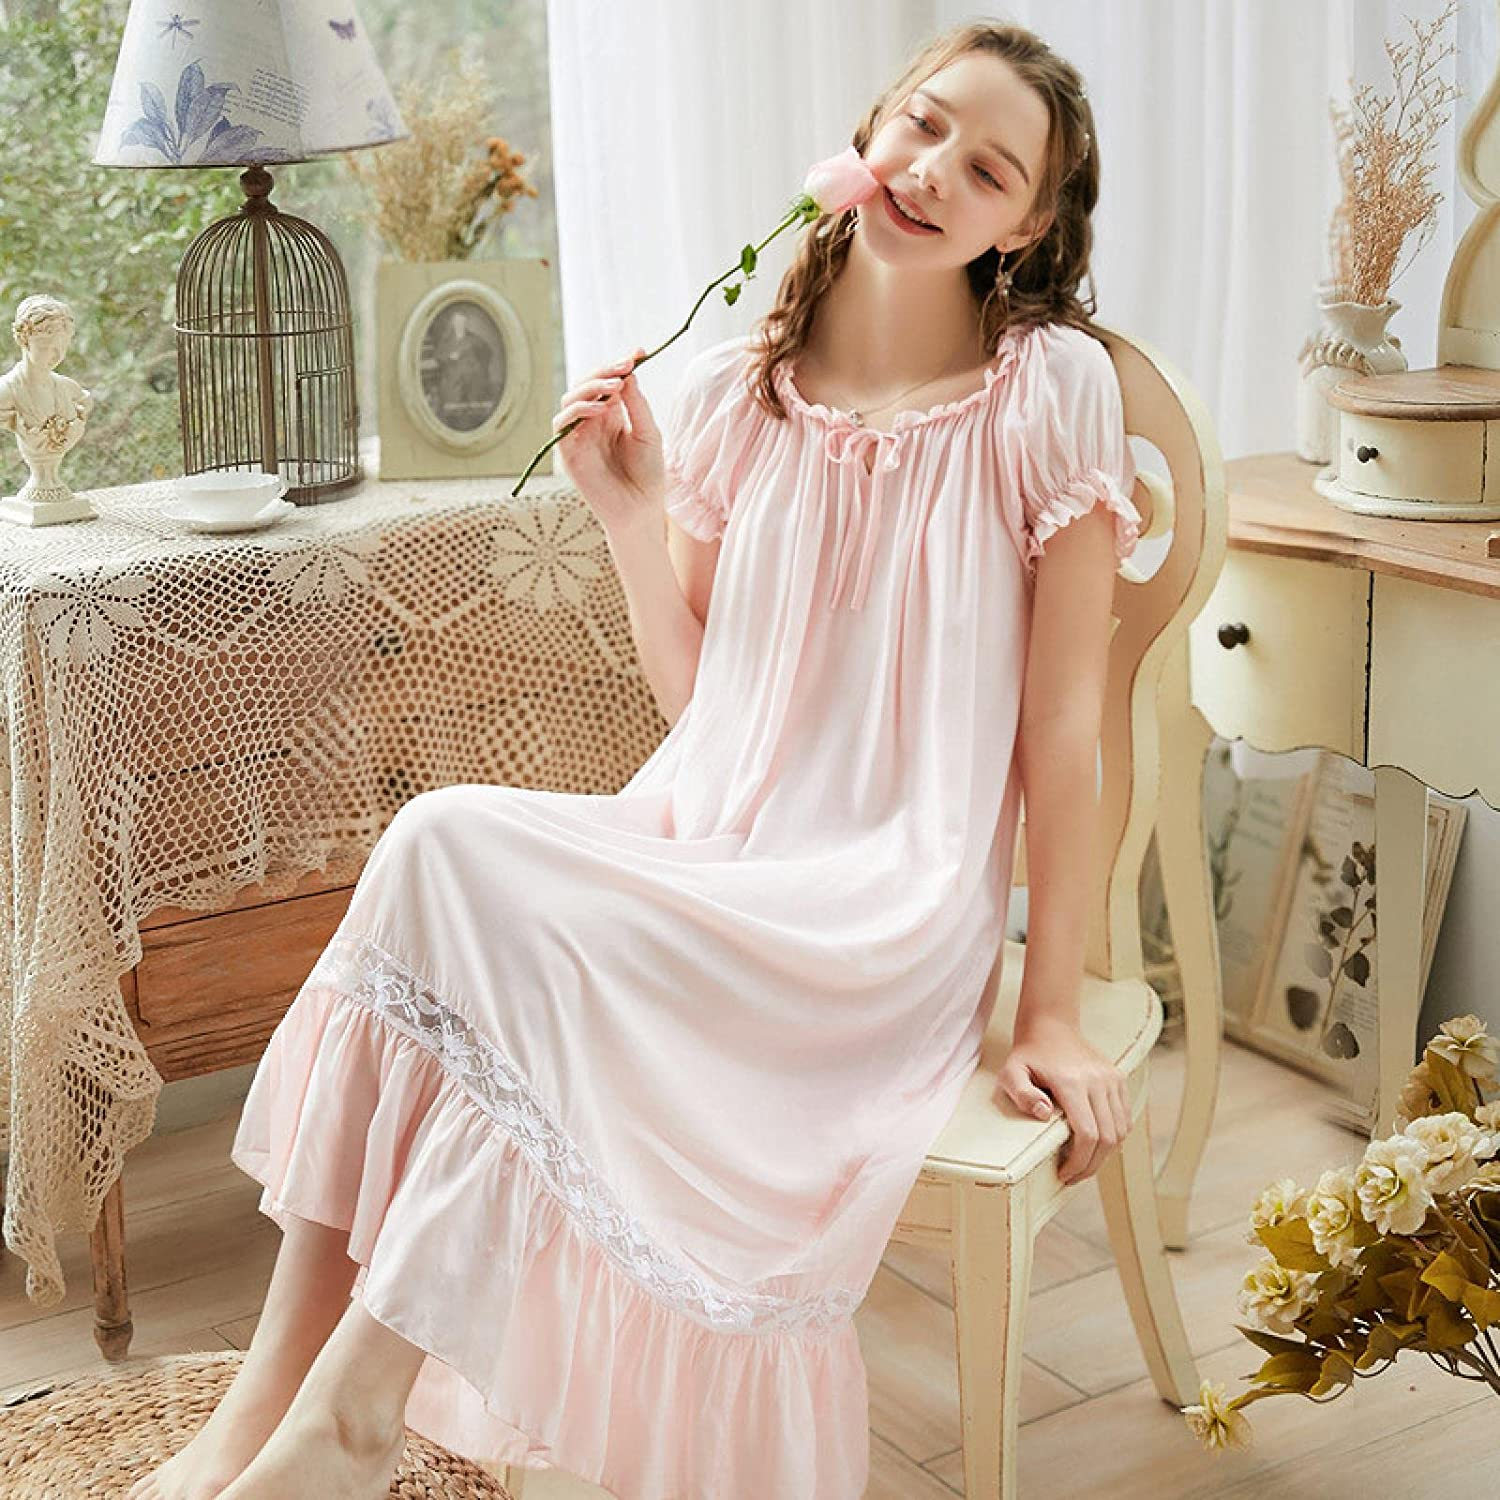 STJDM Save money Nightgown Vintage White Lace High material Women Nighty Lon Cotton Shirt